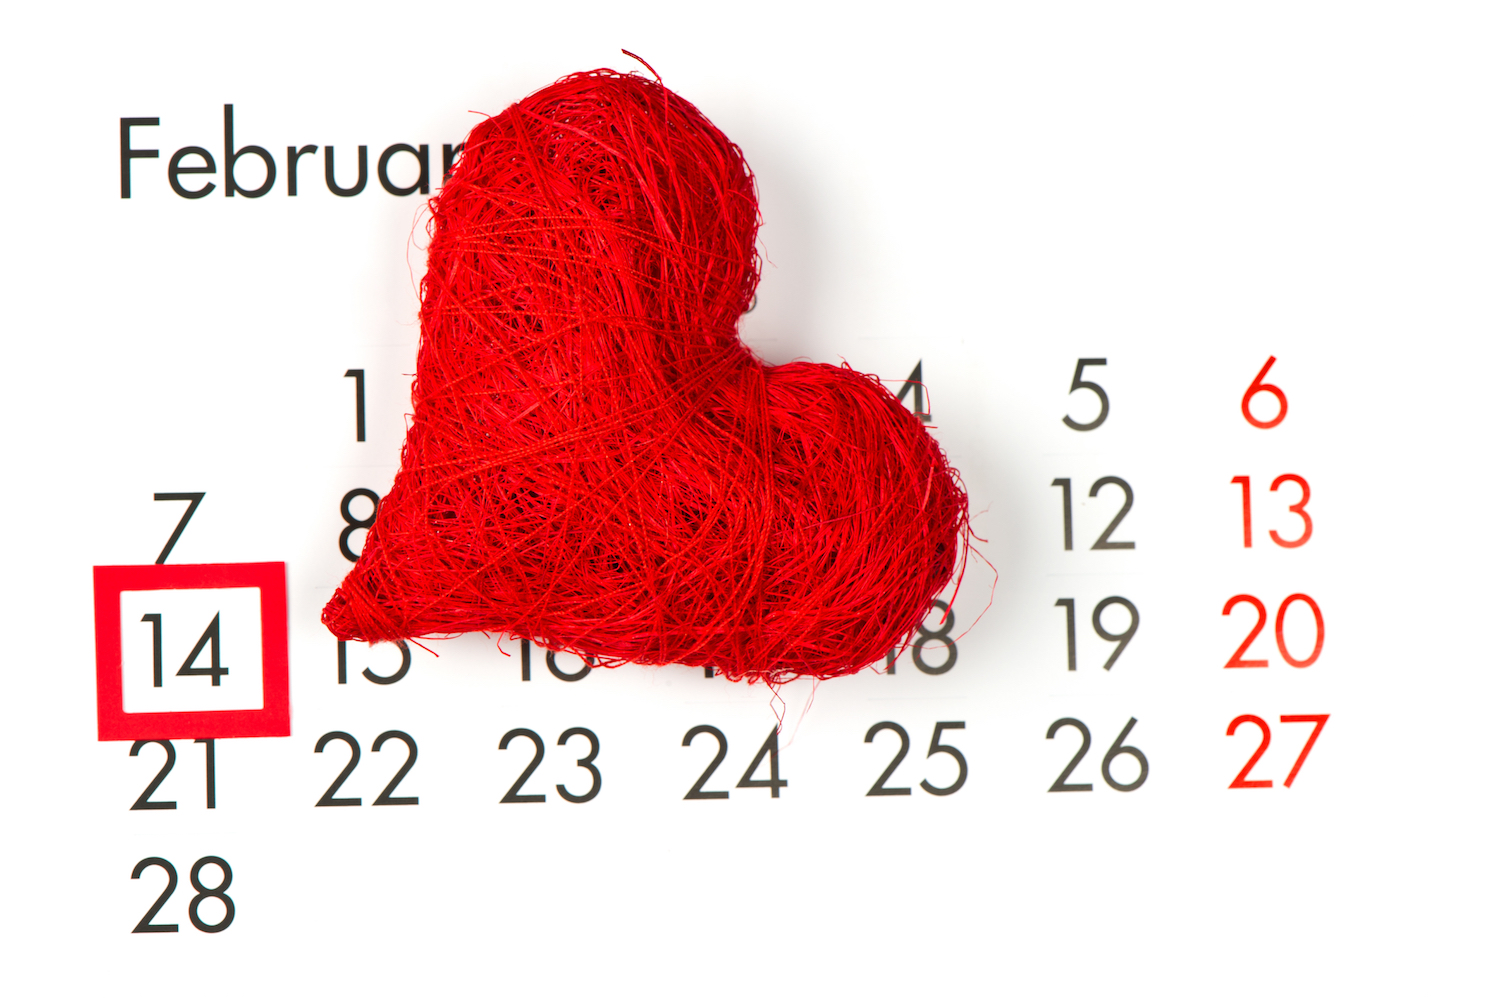 Spend Valentine's Day at Oglebay Institute